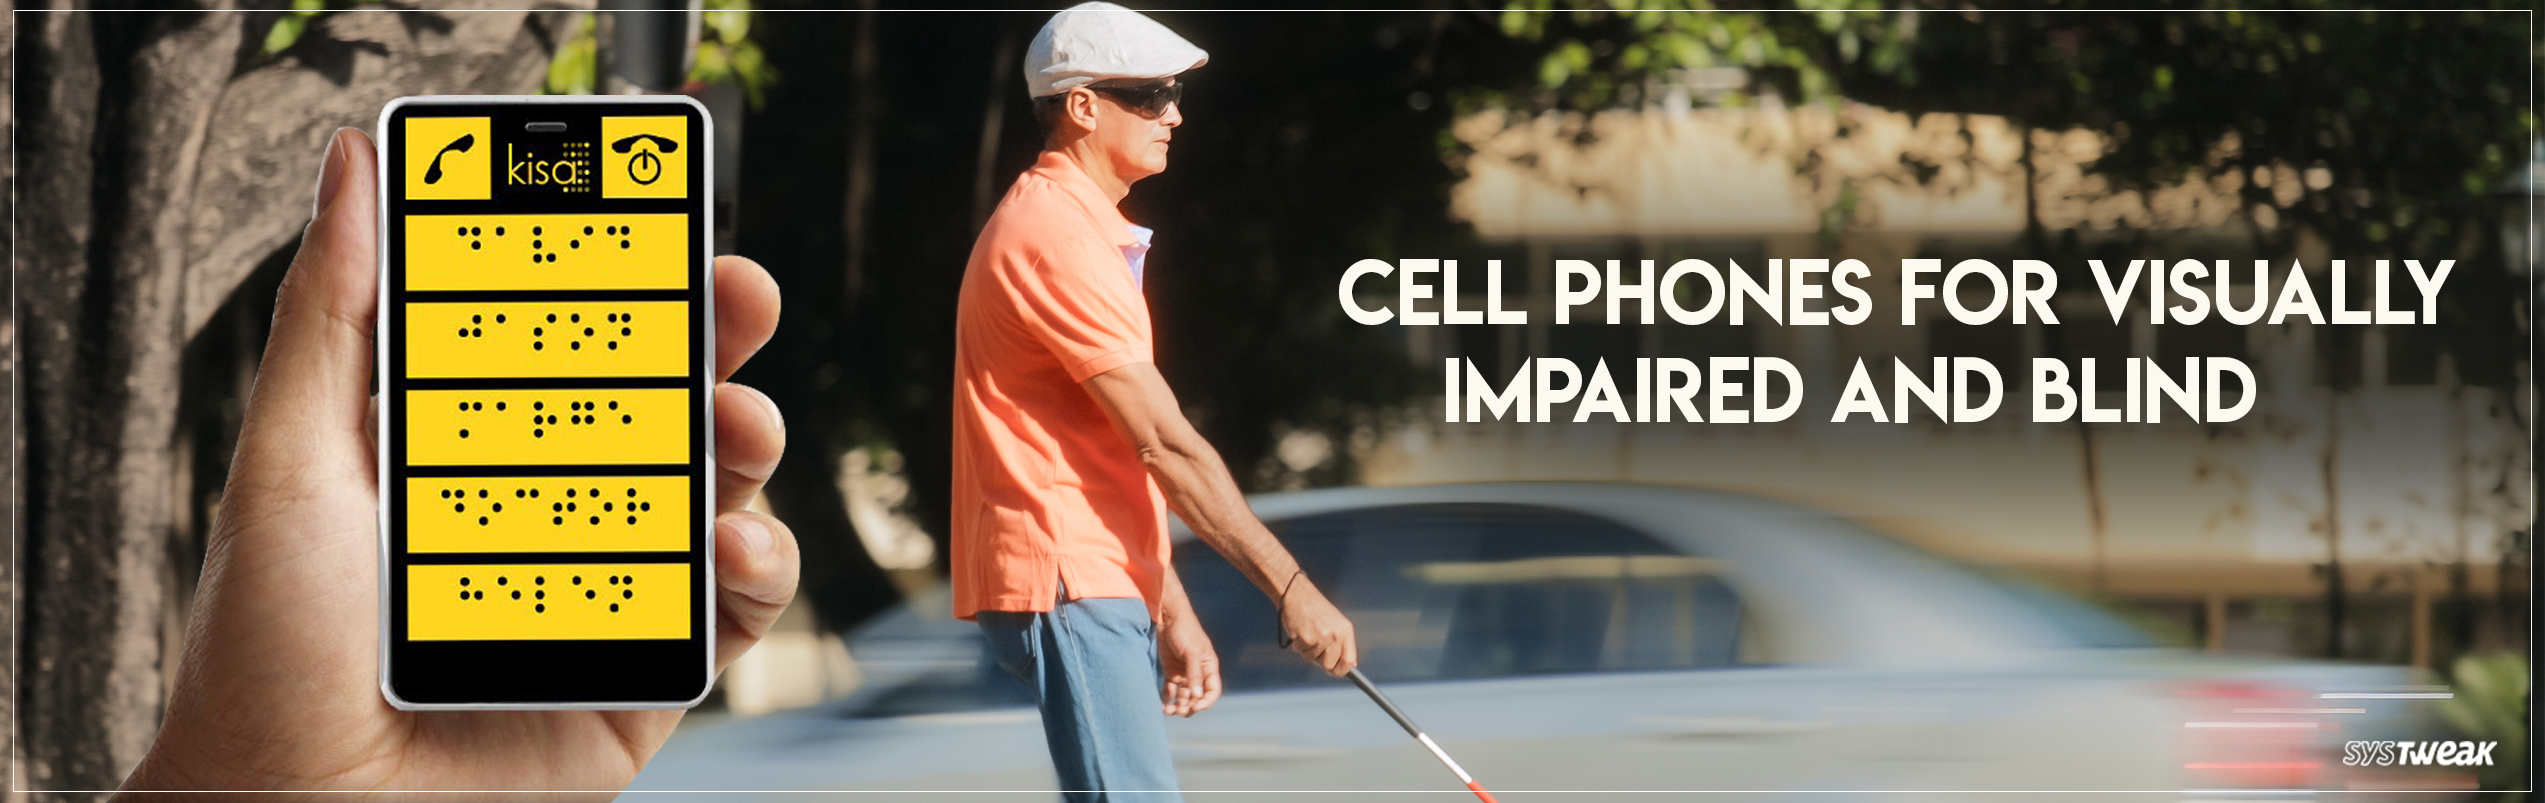 Best Cell Phones for Visually Impaired and Blind